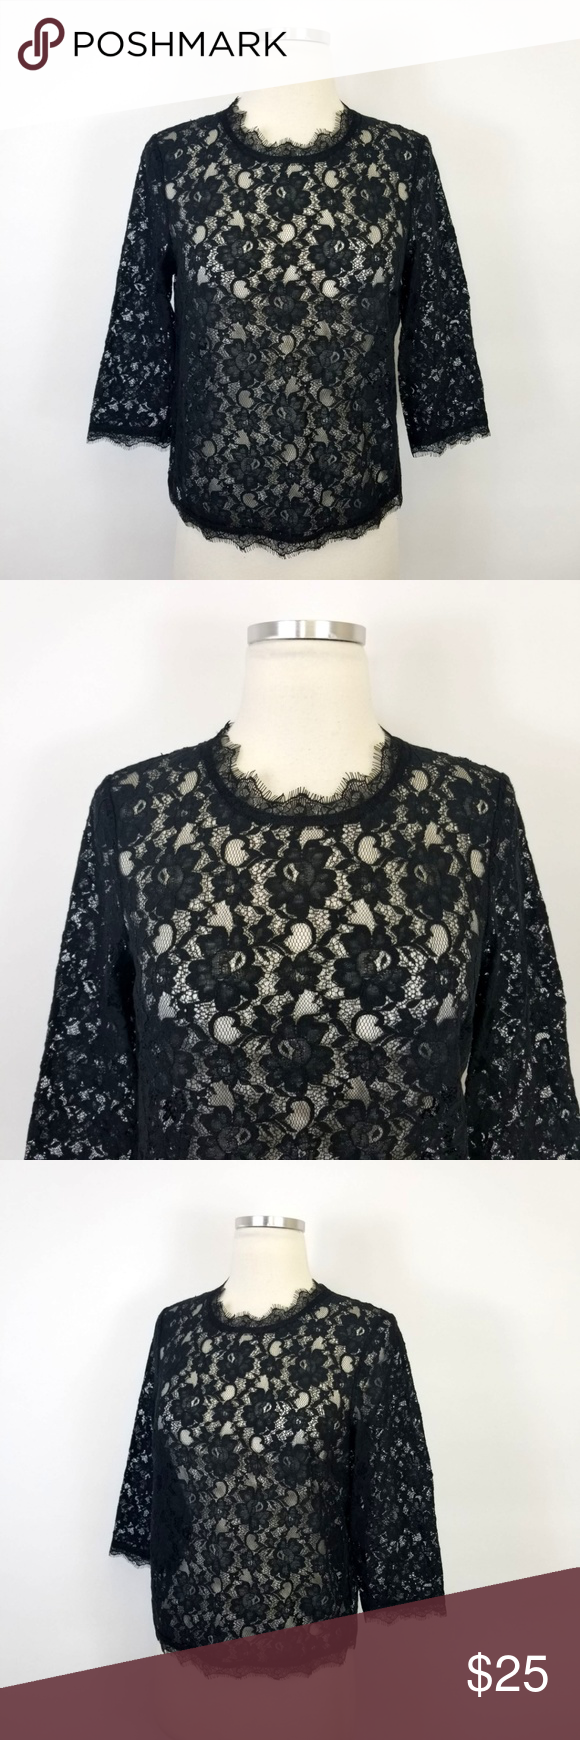 620e345c0e2c1 Talbots Black Floral Lace Top Talbots black floral lace 3 4 sleeve top.  This is sheer. Needs a tank underneath. Size 6P (SKU R25) Gently used and  clean.